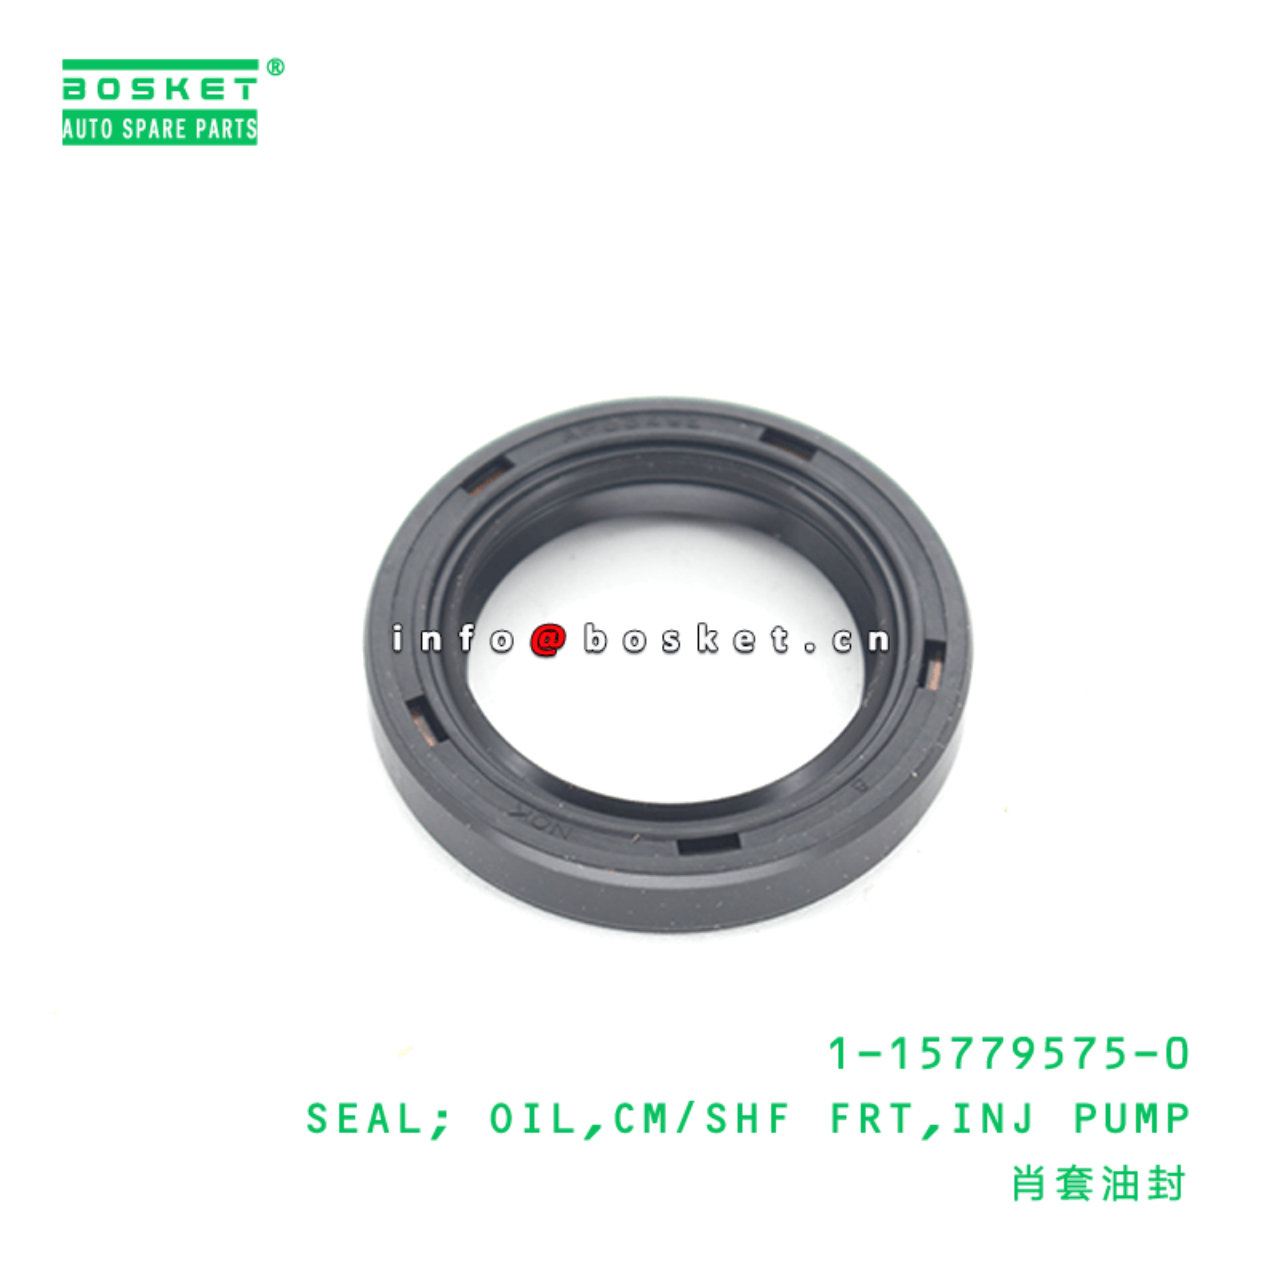 1-15779575-0 Injection Pump Camshaft Front Oil Seal 1157795750 Suitable for ISUZU XE